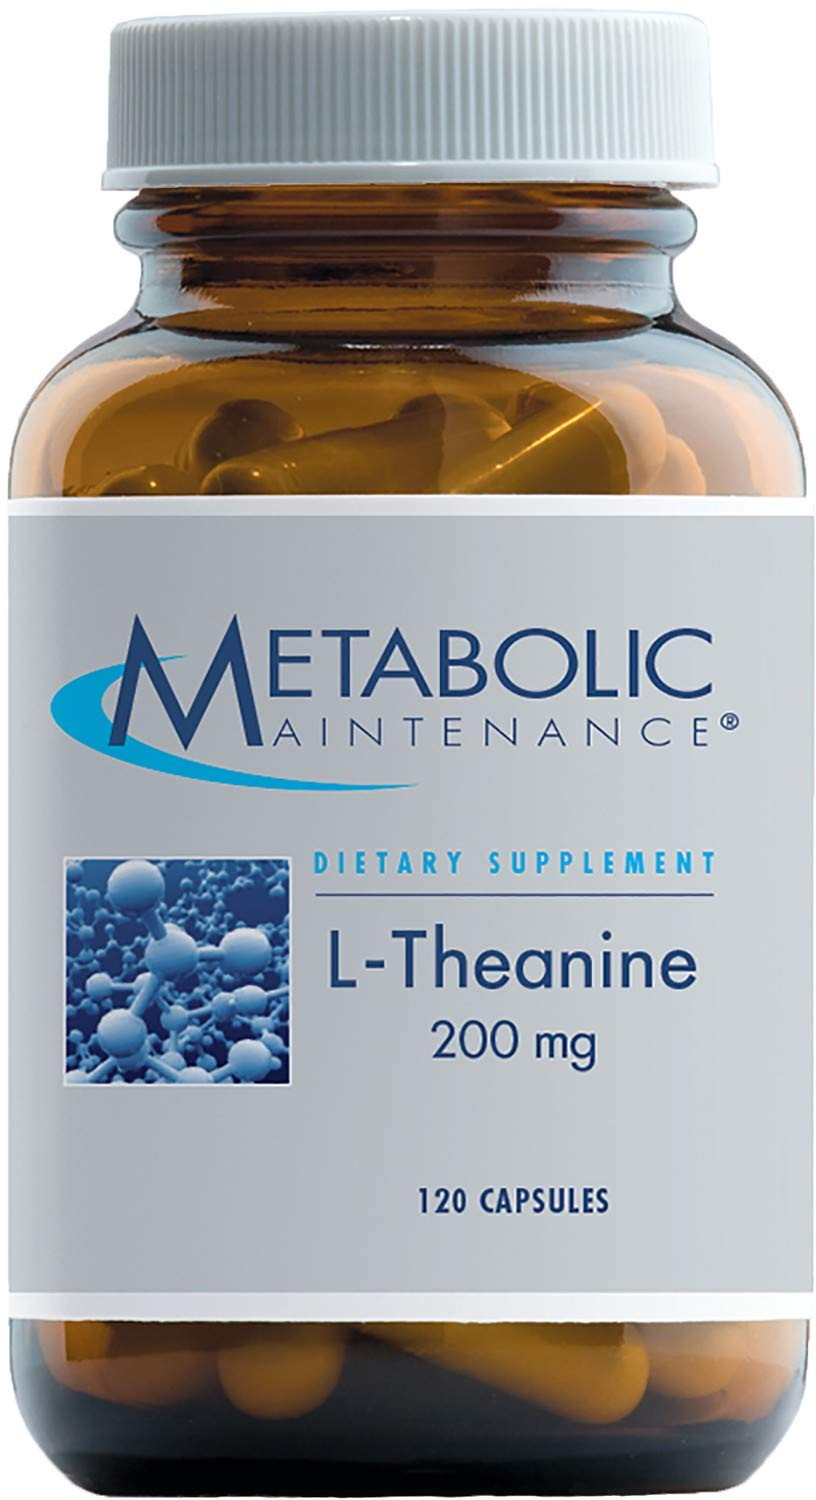 Metabolic Maintenance L-Theanine - 200 mg Suntheanine, Relaxation + Focus Support (120 Capsules)